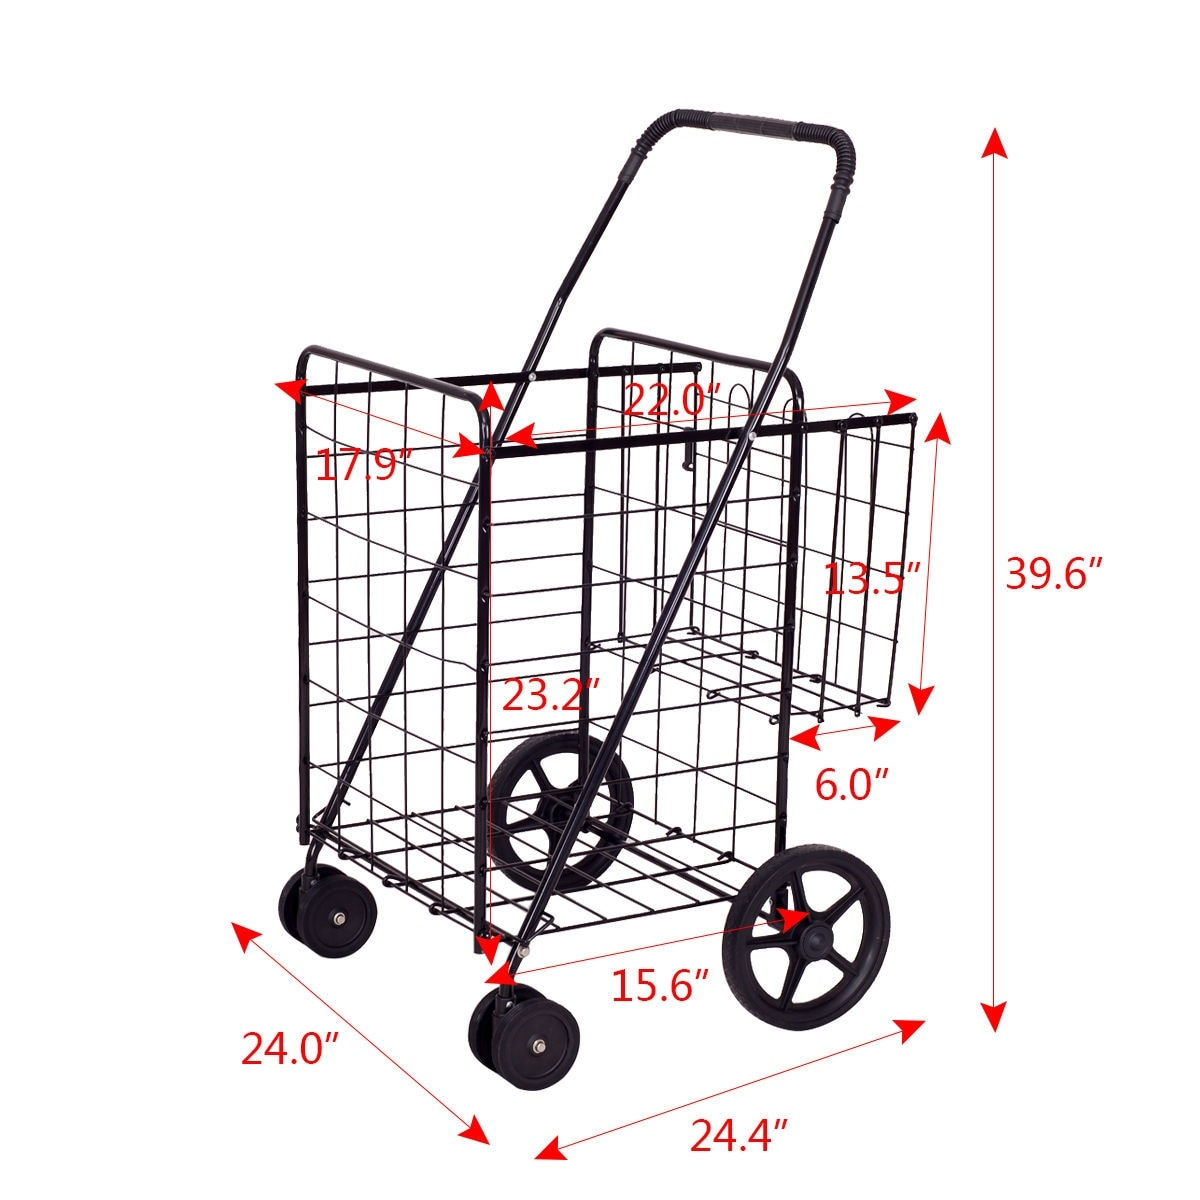 fb02e6dbccf17 Shop Costway Folding Shopping Cart Jumbo Basket Grocery Laundry Travel w/  Swivel Wheels - as pic - Free Shipping Today - Overstock - 16639878